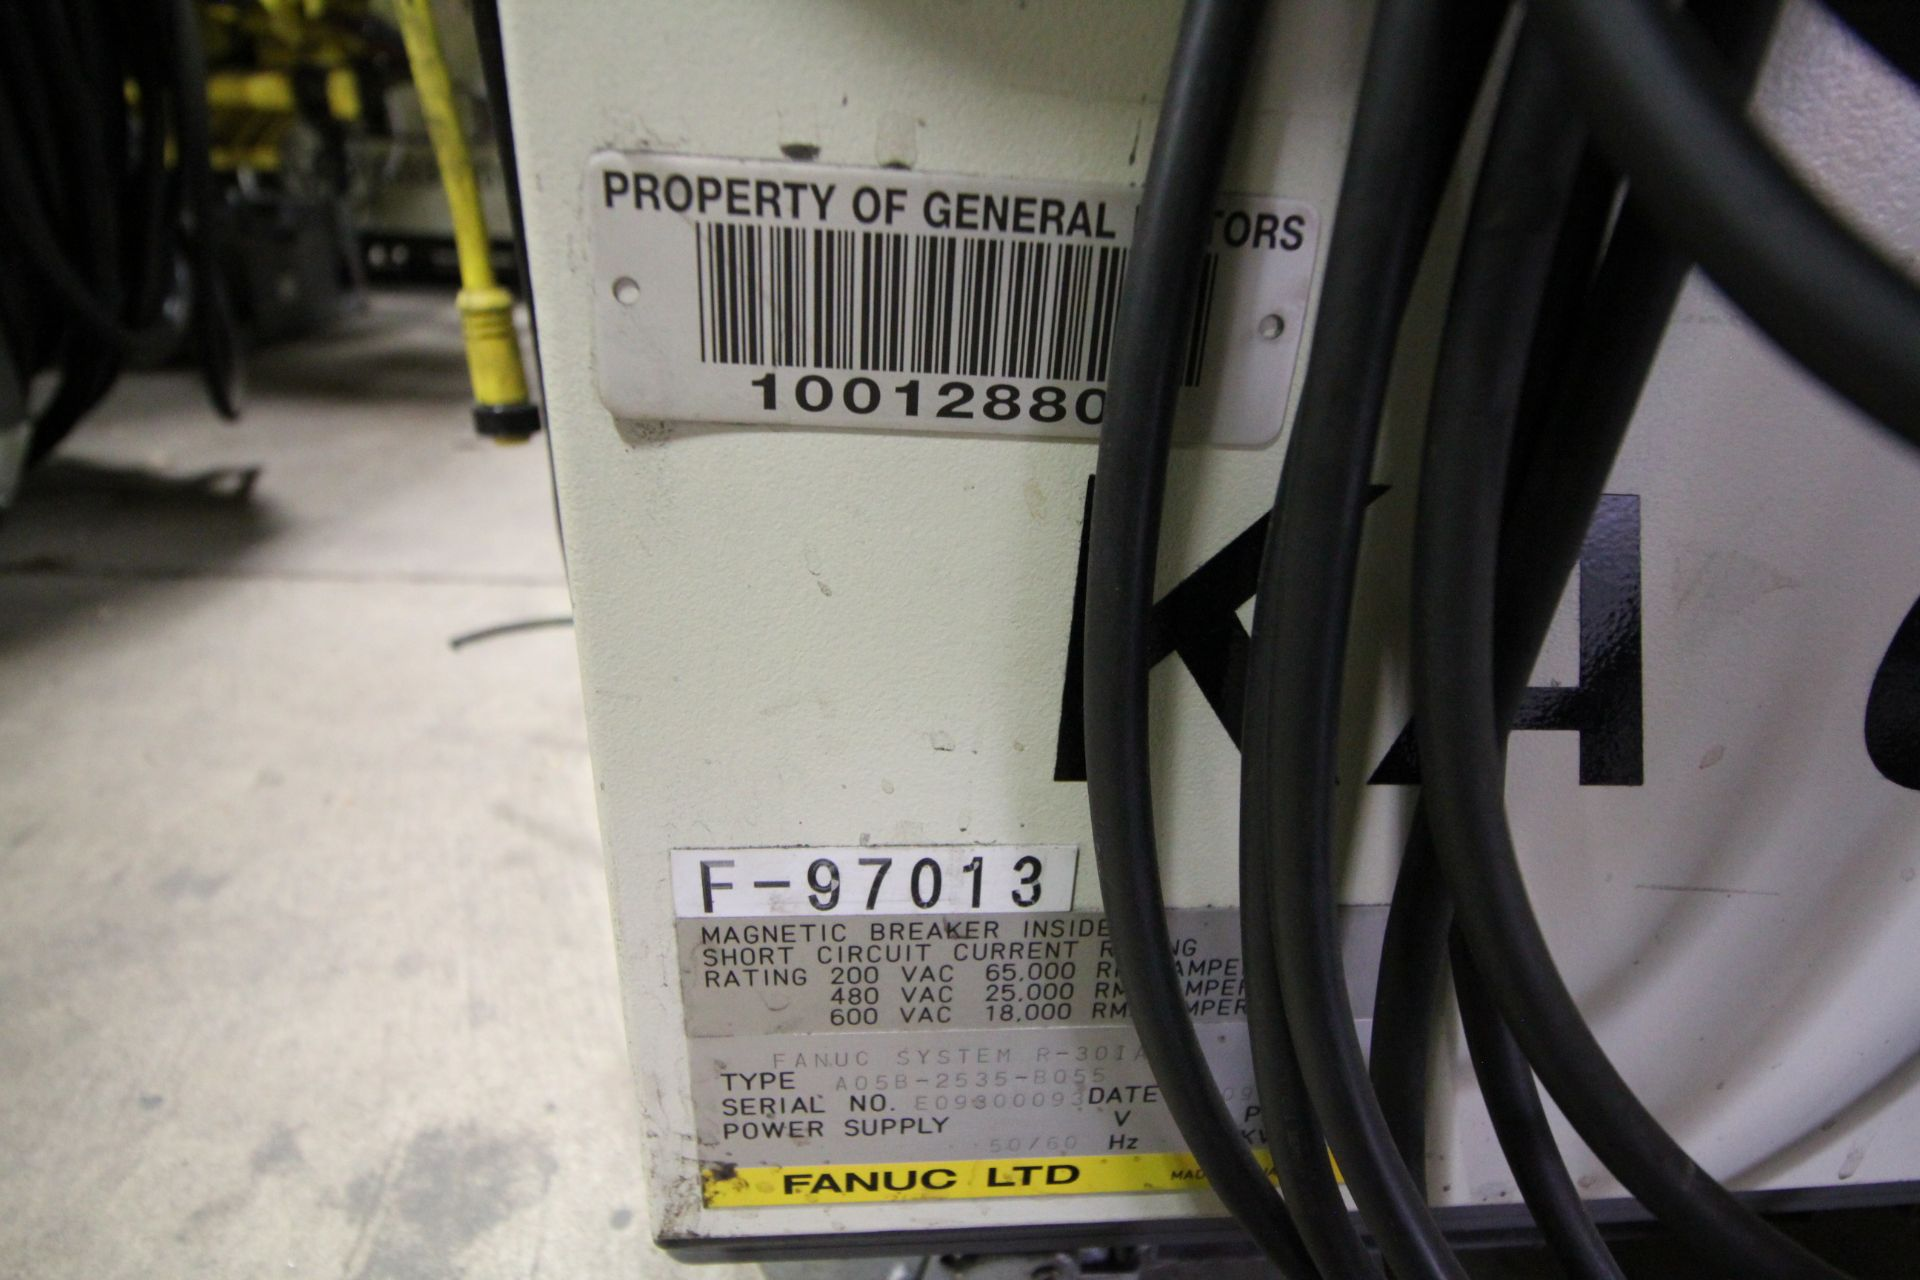 FANUC ROBOT R-2000iB/210F WITH R-30iA CONTROL, CABLES & TEACH PENDANT, SN 97013, YEAR 2009 - Image 7 of 8